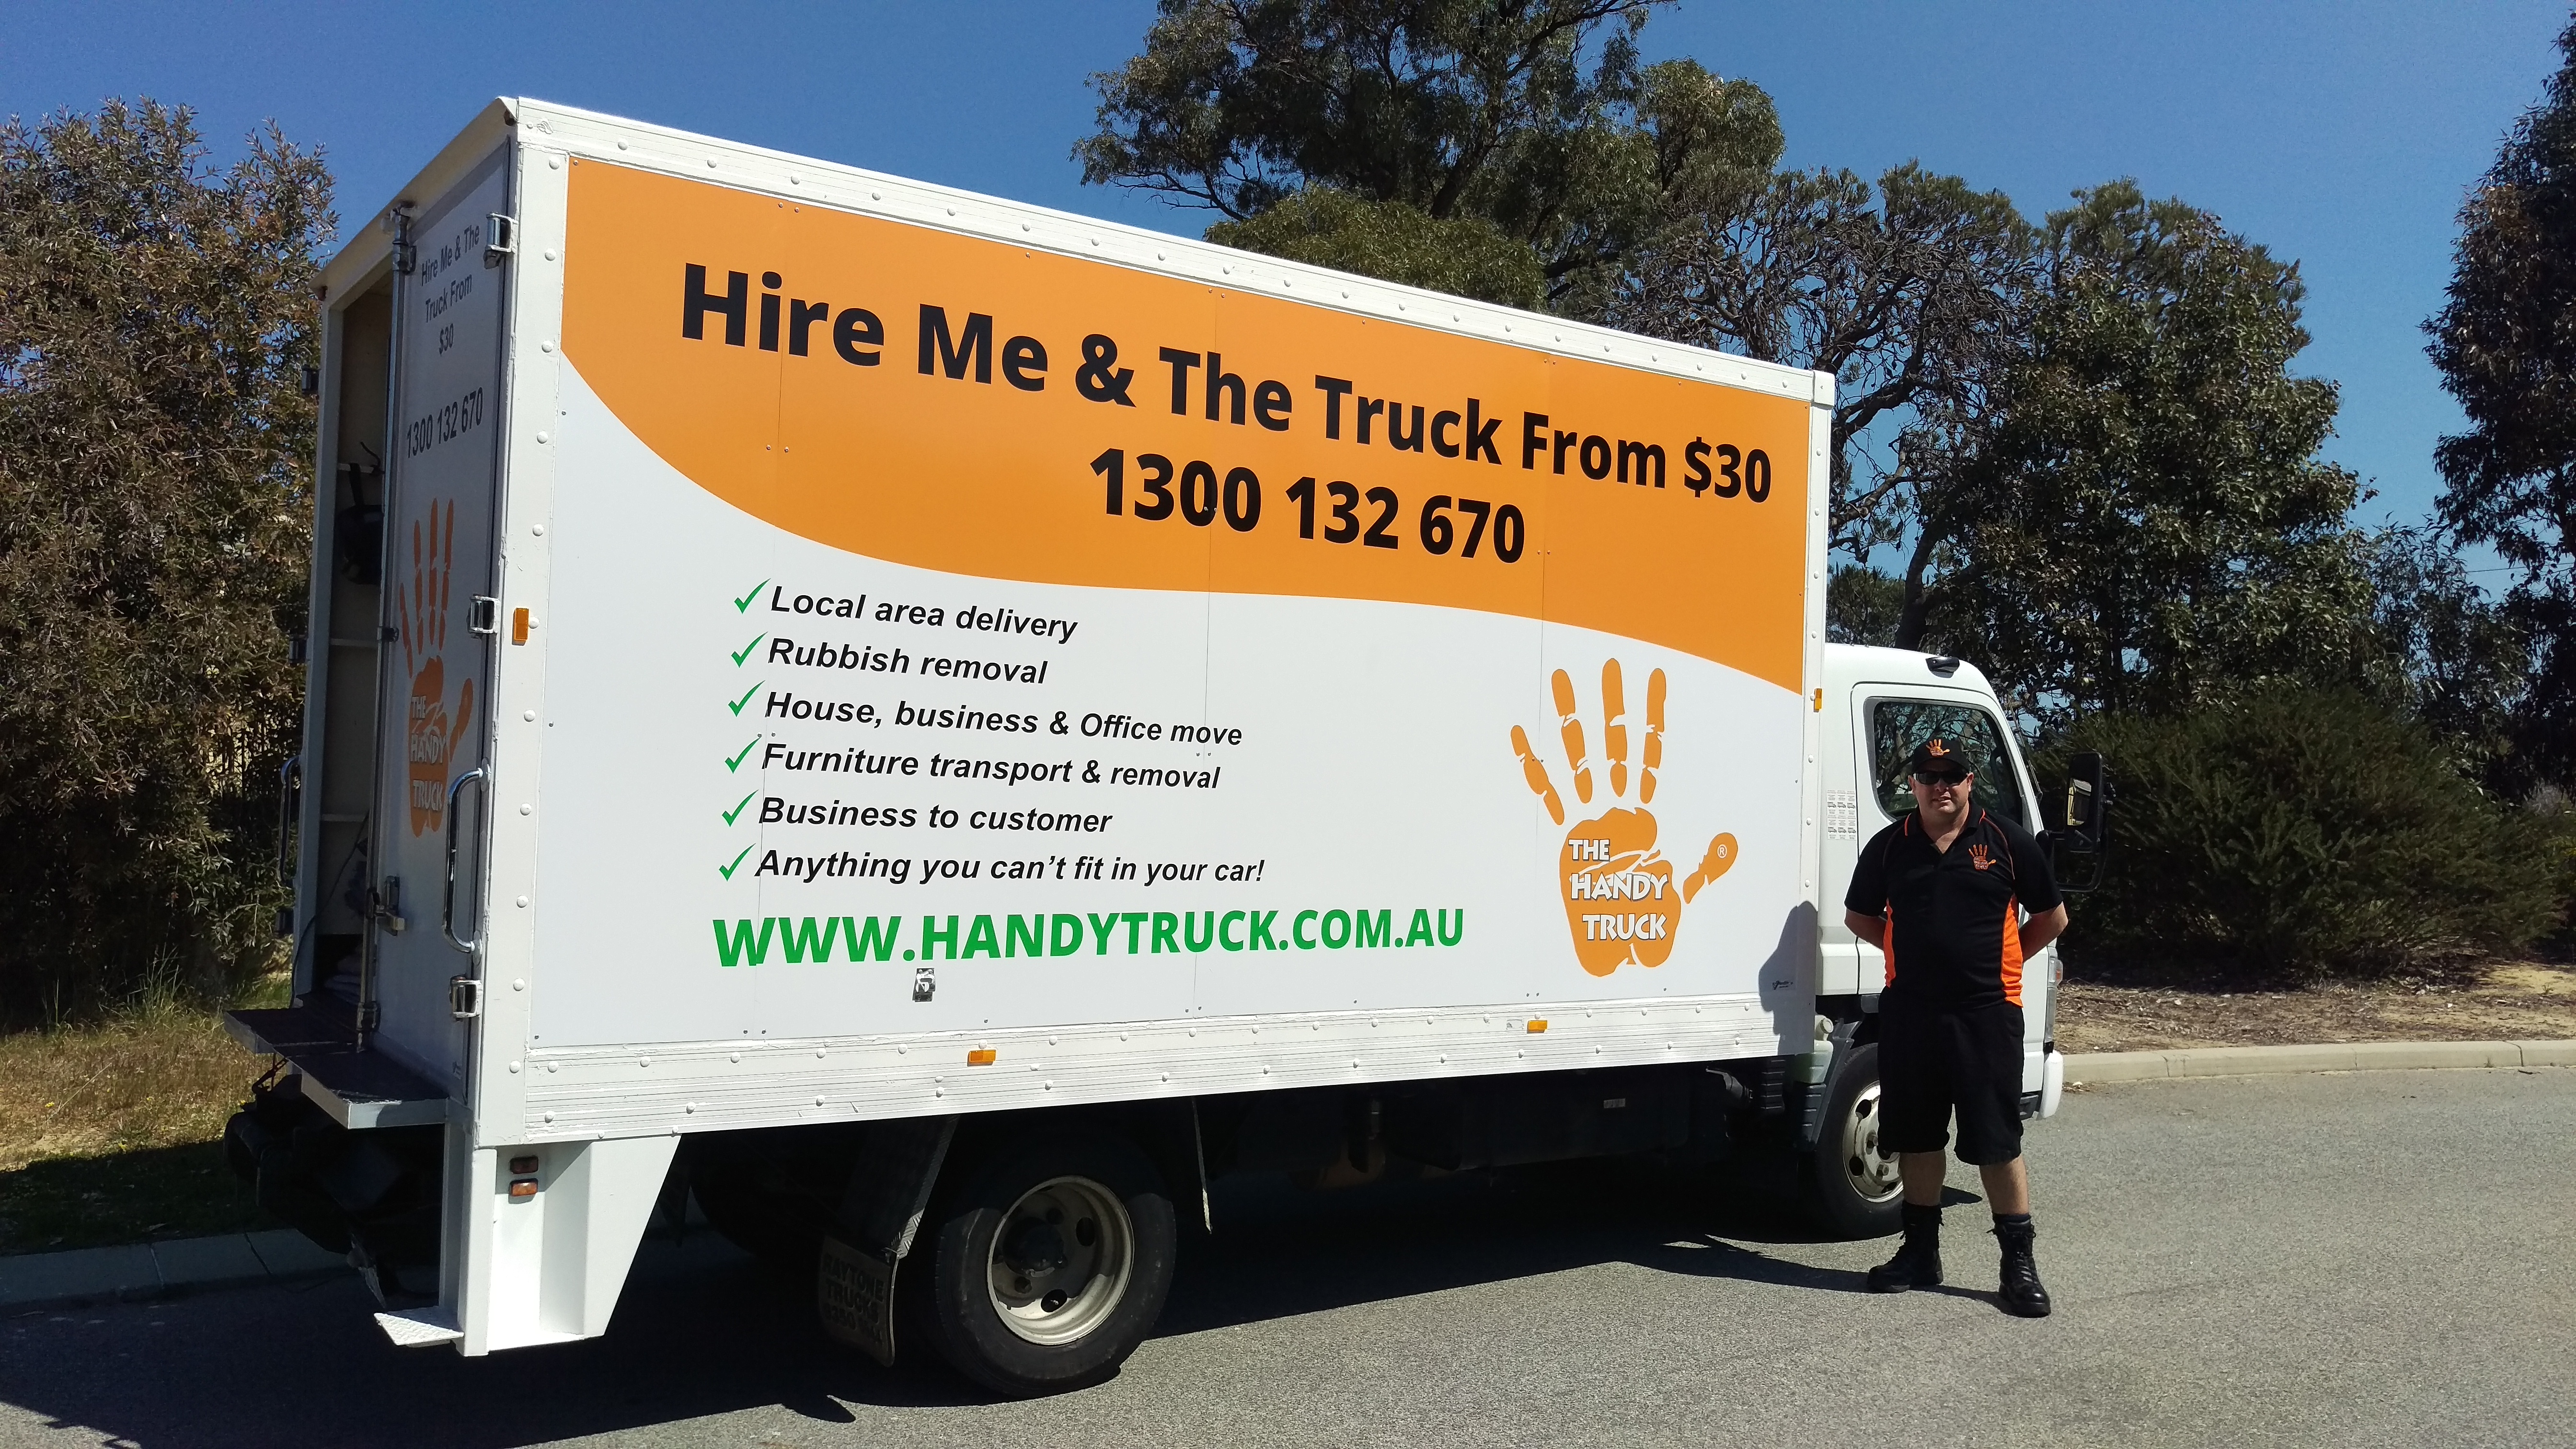 Your delivery and removalist service in Cockburn